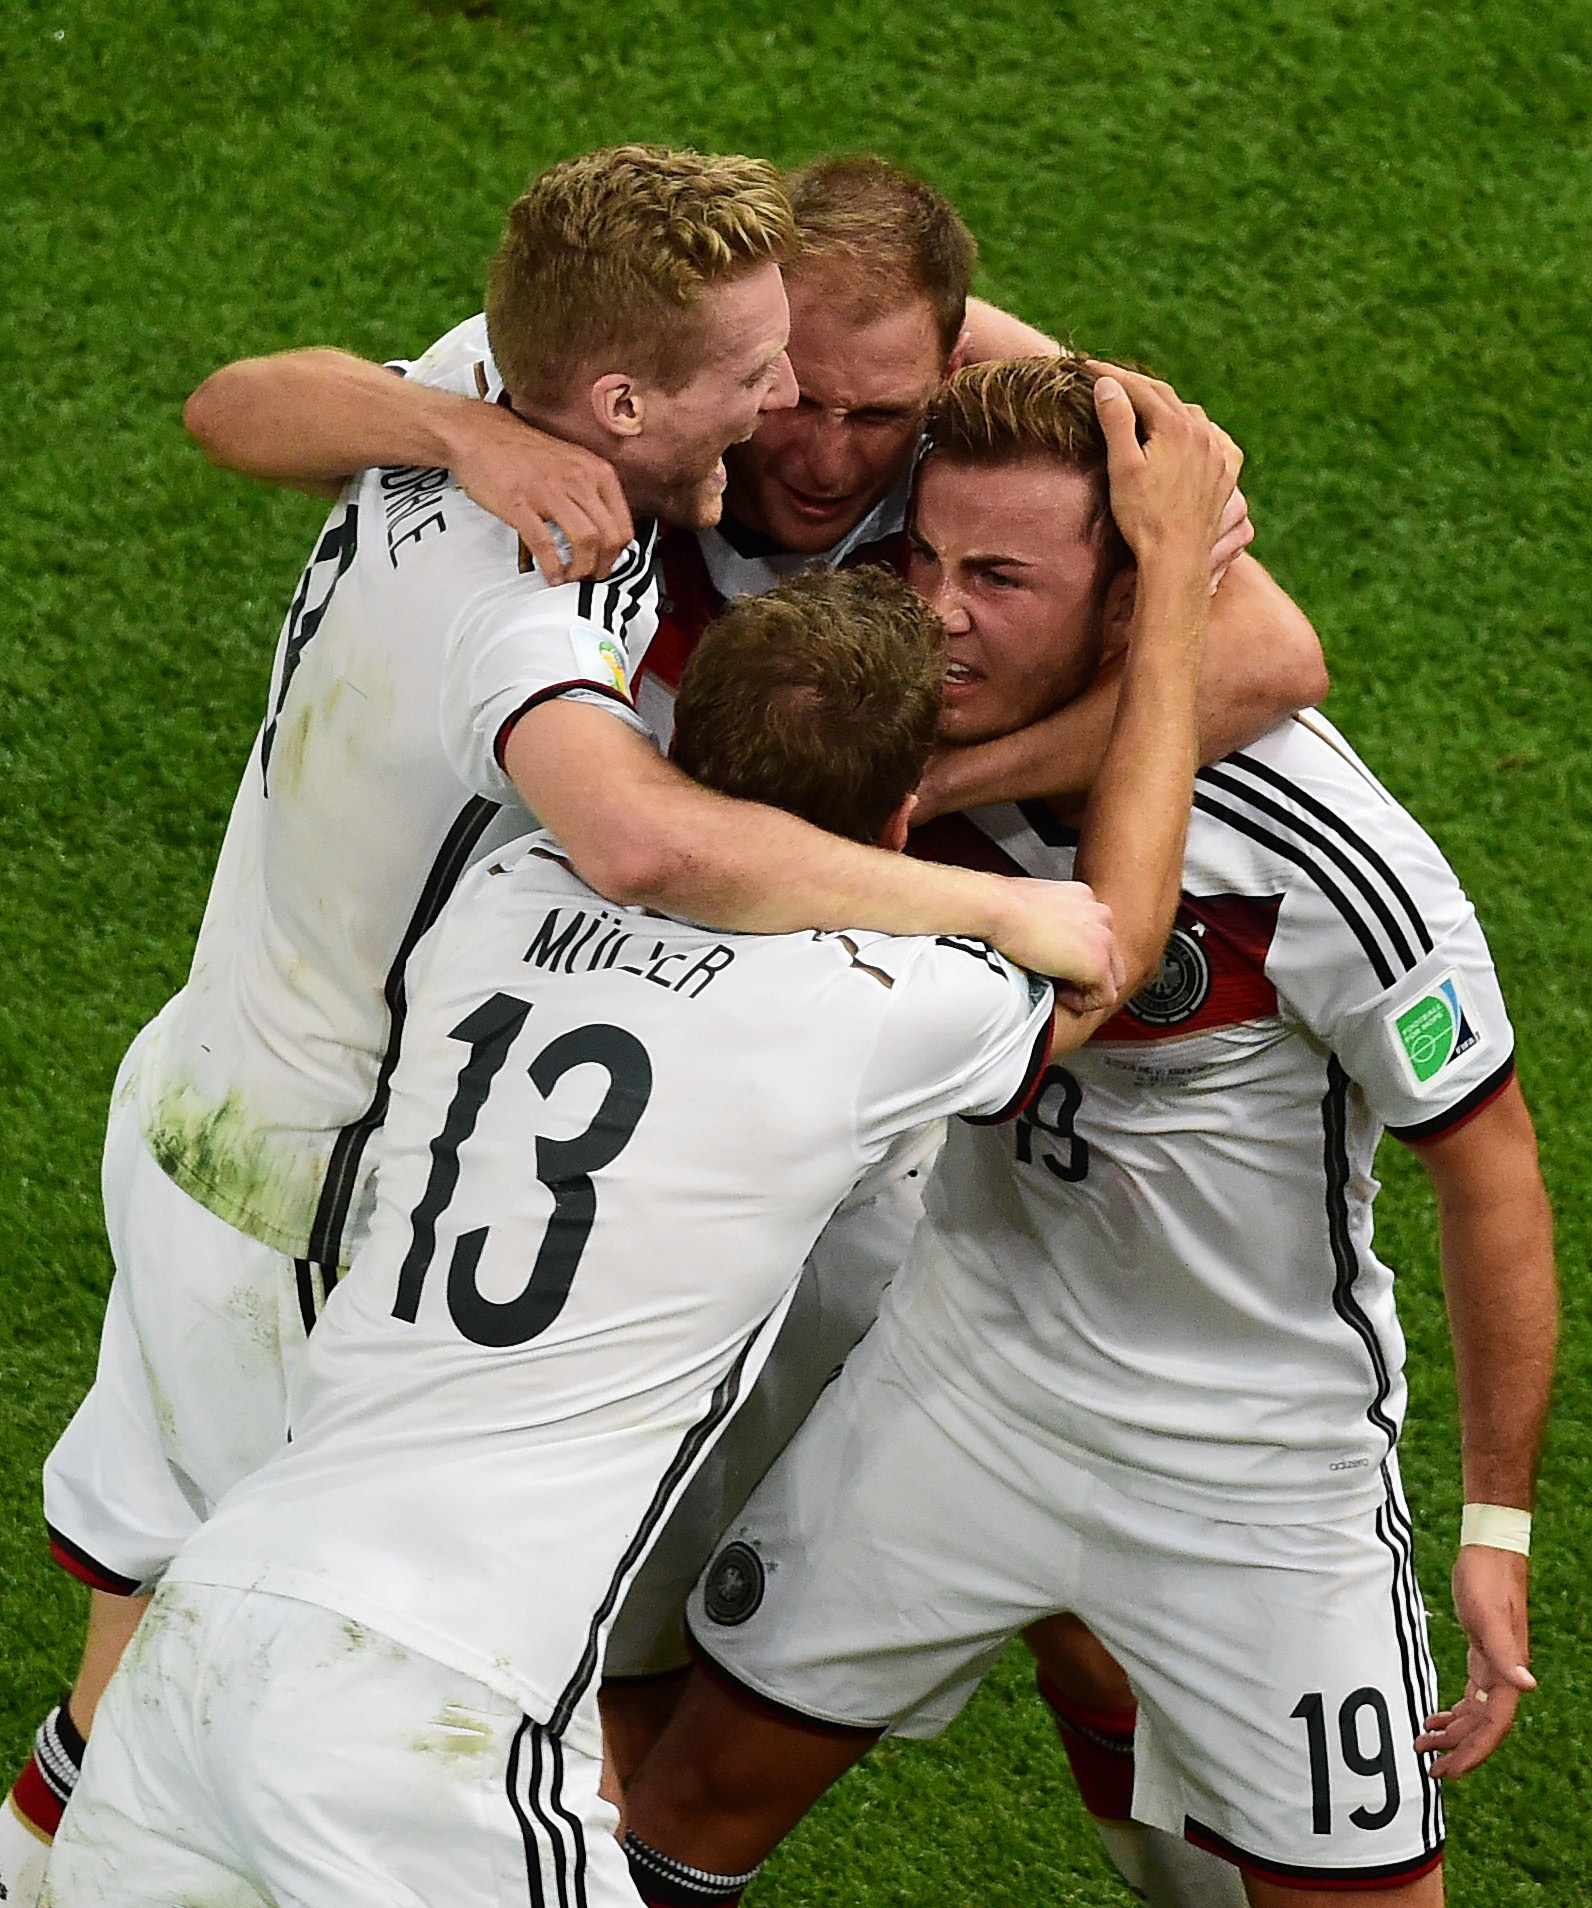 The Most Emotional Moments From the World Cup Final